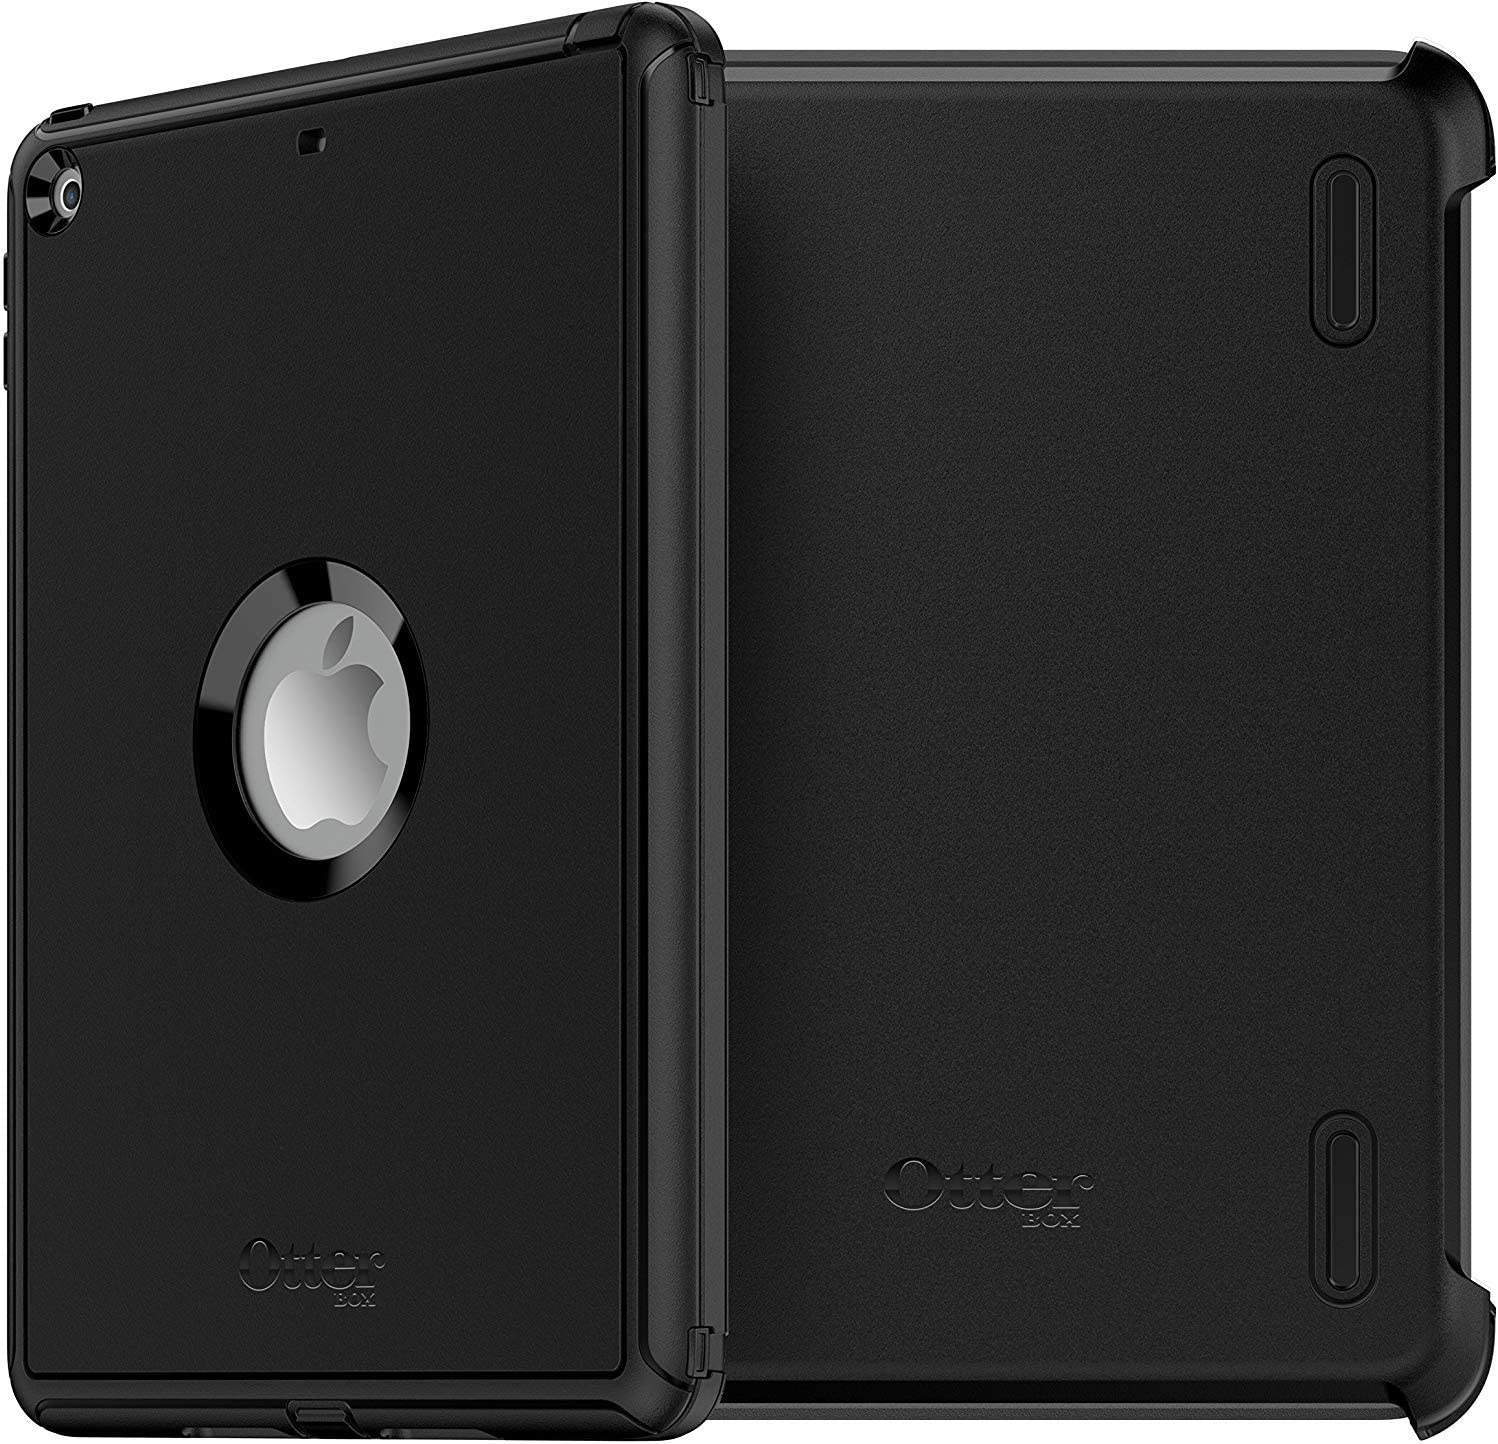 OtterBox Defender Series Case for iPad (5th Gen)/ iPad (6th Gen) - Bulk Packaging - Black